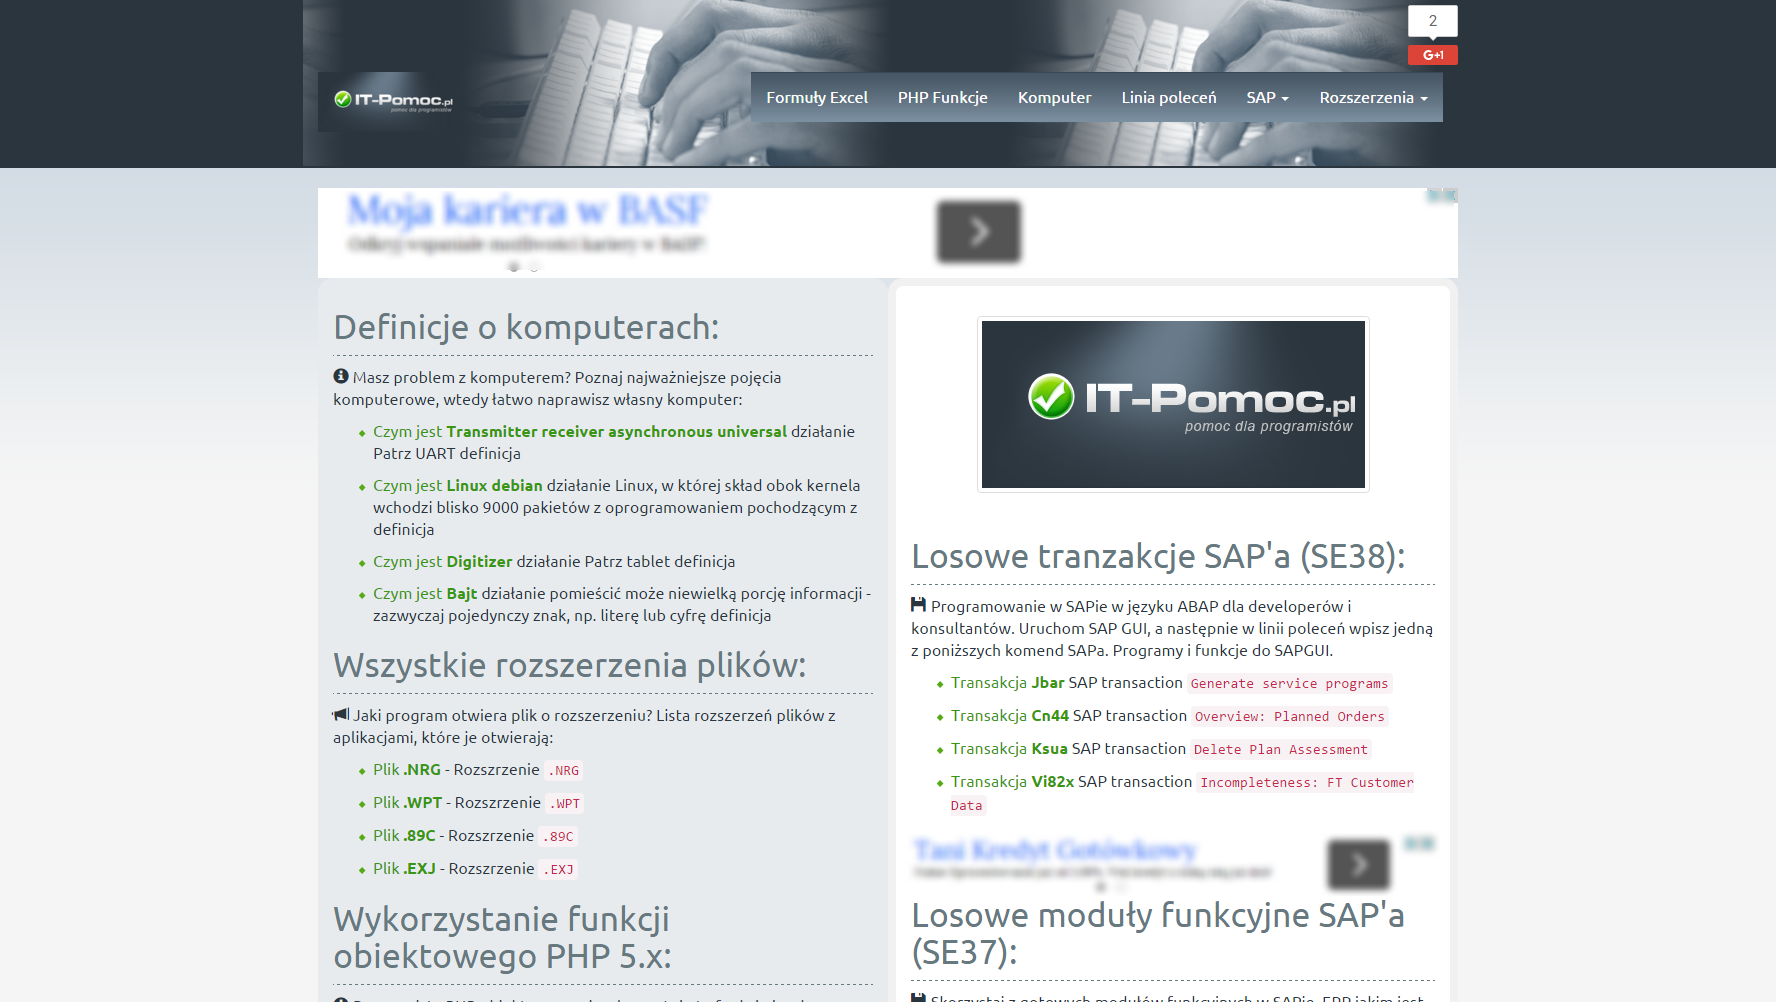 Projekt IT-Pomoc.pl